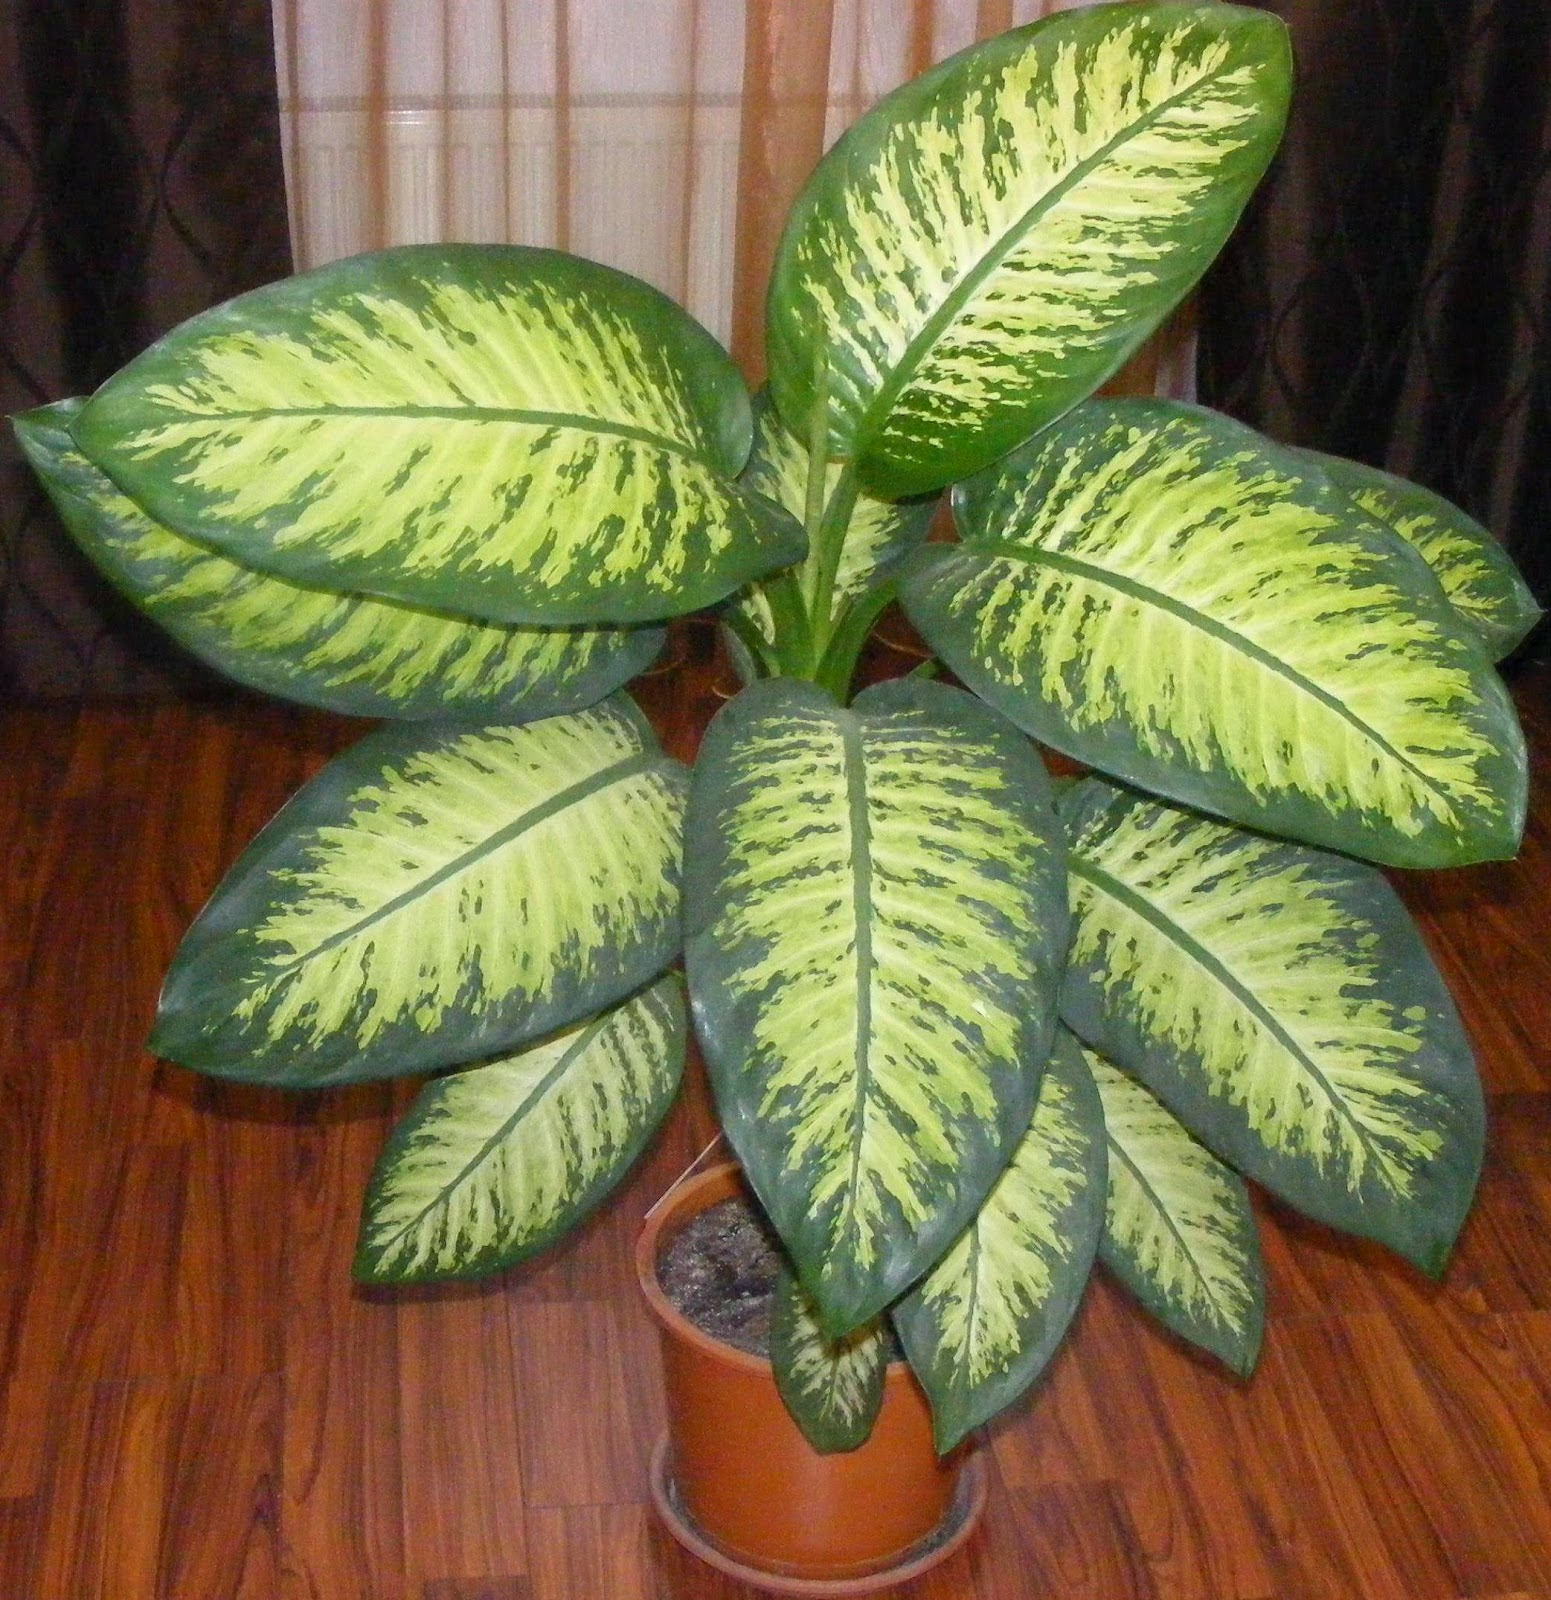 dieffenbachia, floare, cum se ingrijeste si inmulteste dieffenbachia, flori de apartament, flori decorative, floare decorativa, floare de apartament, ingrijirea florilor,